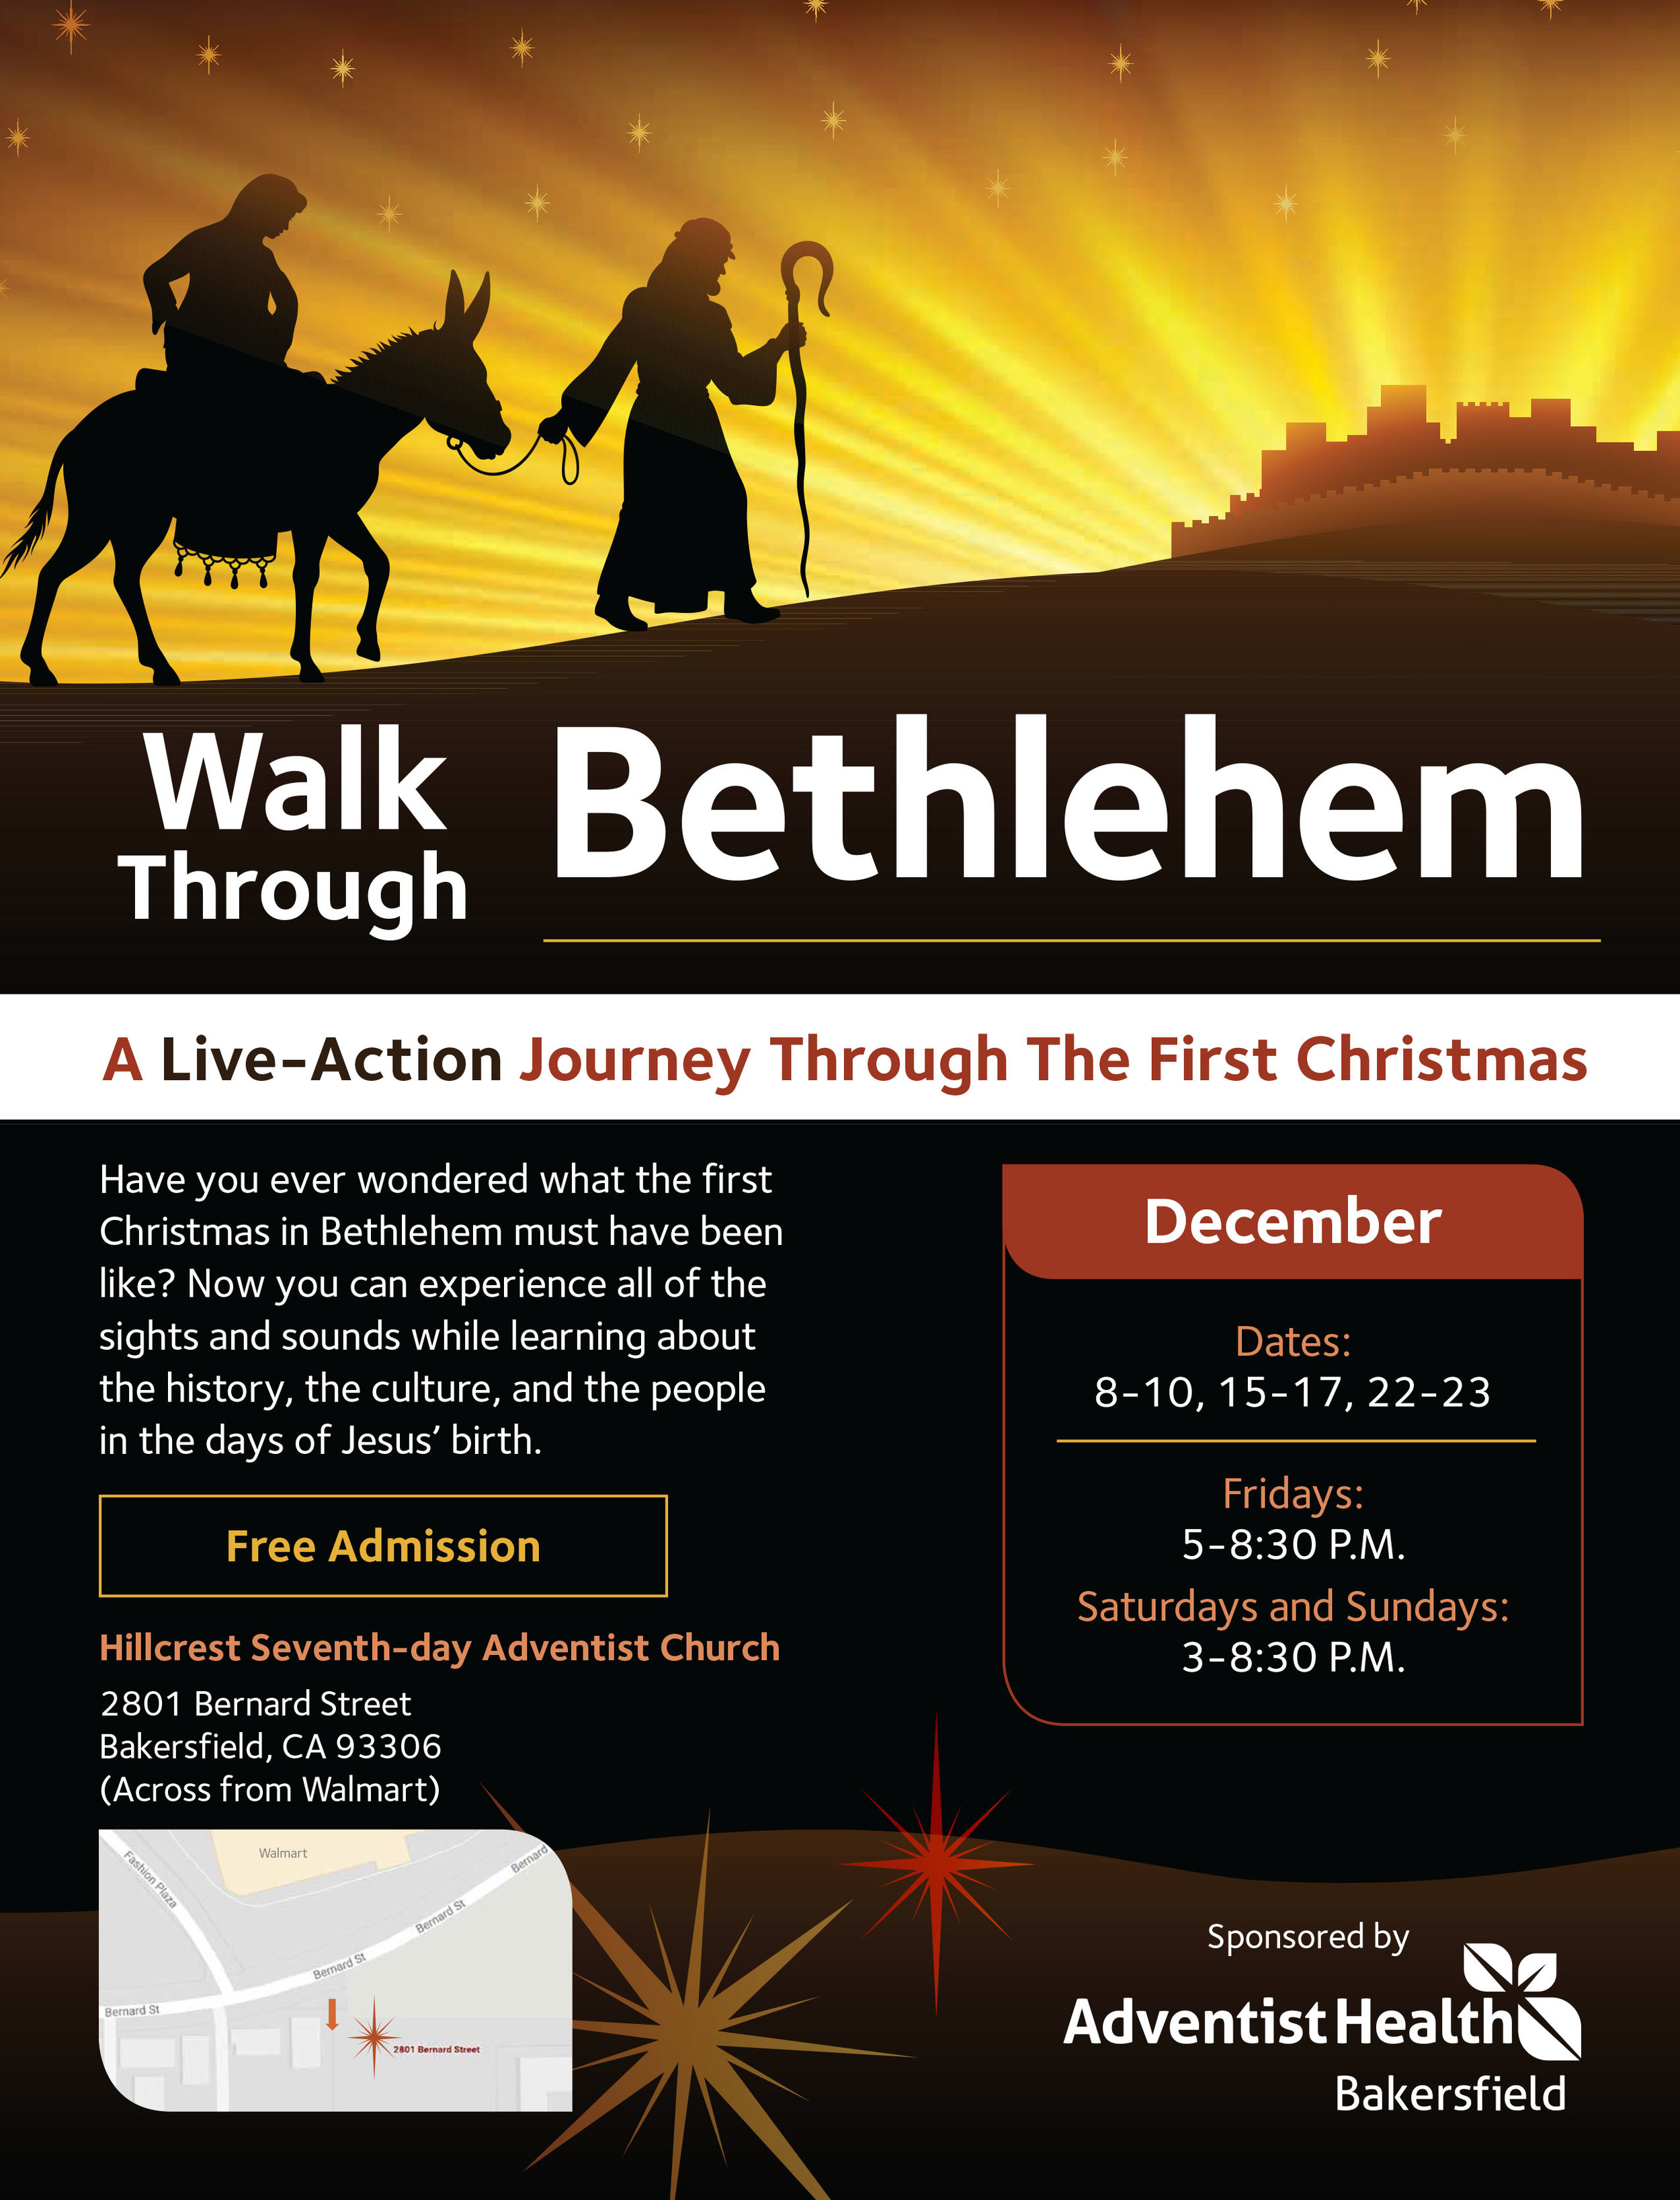 Walk_Through_Bethlehem_2017.jpg